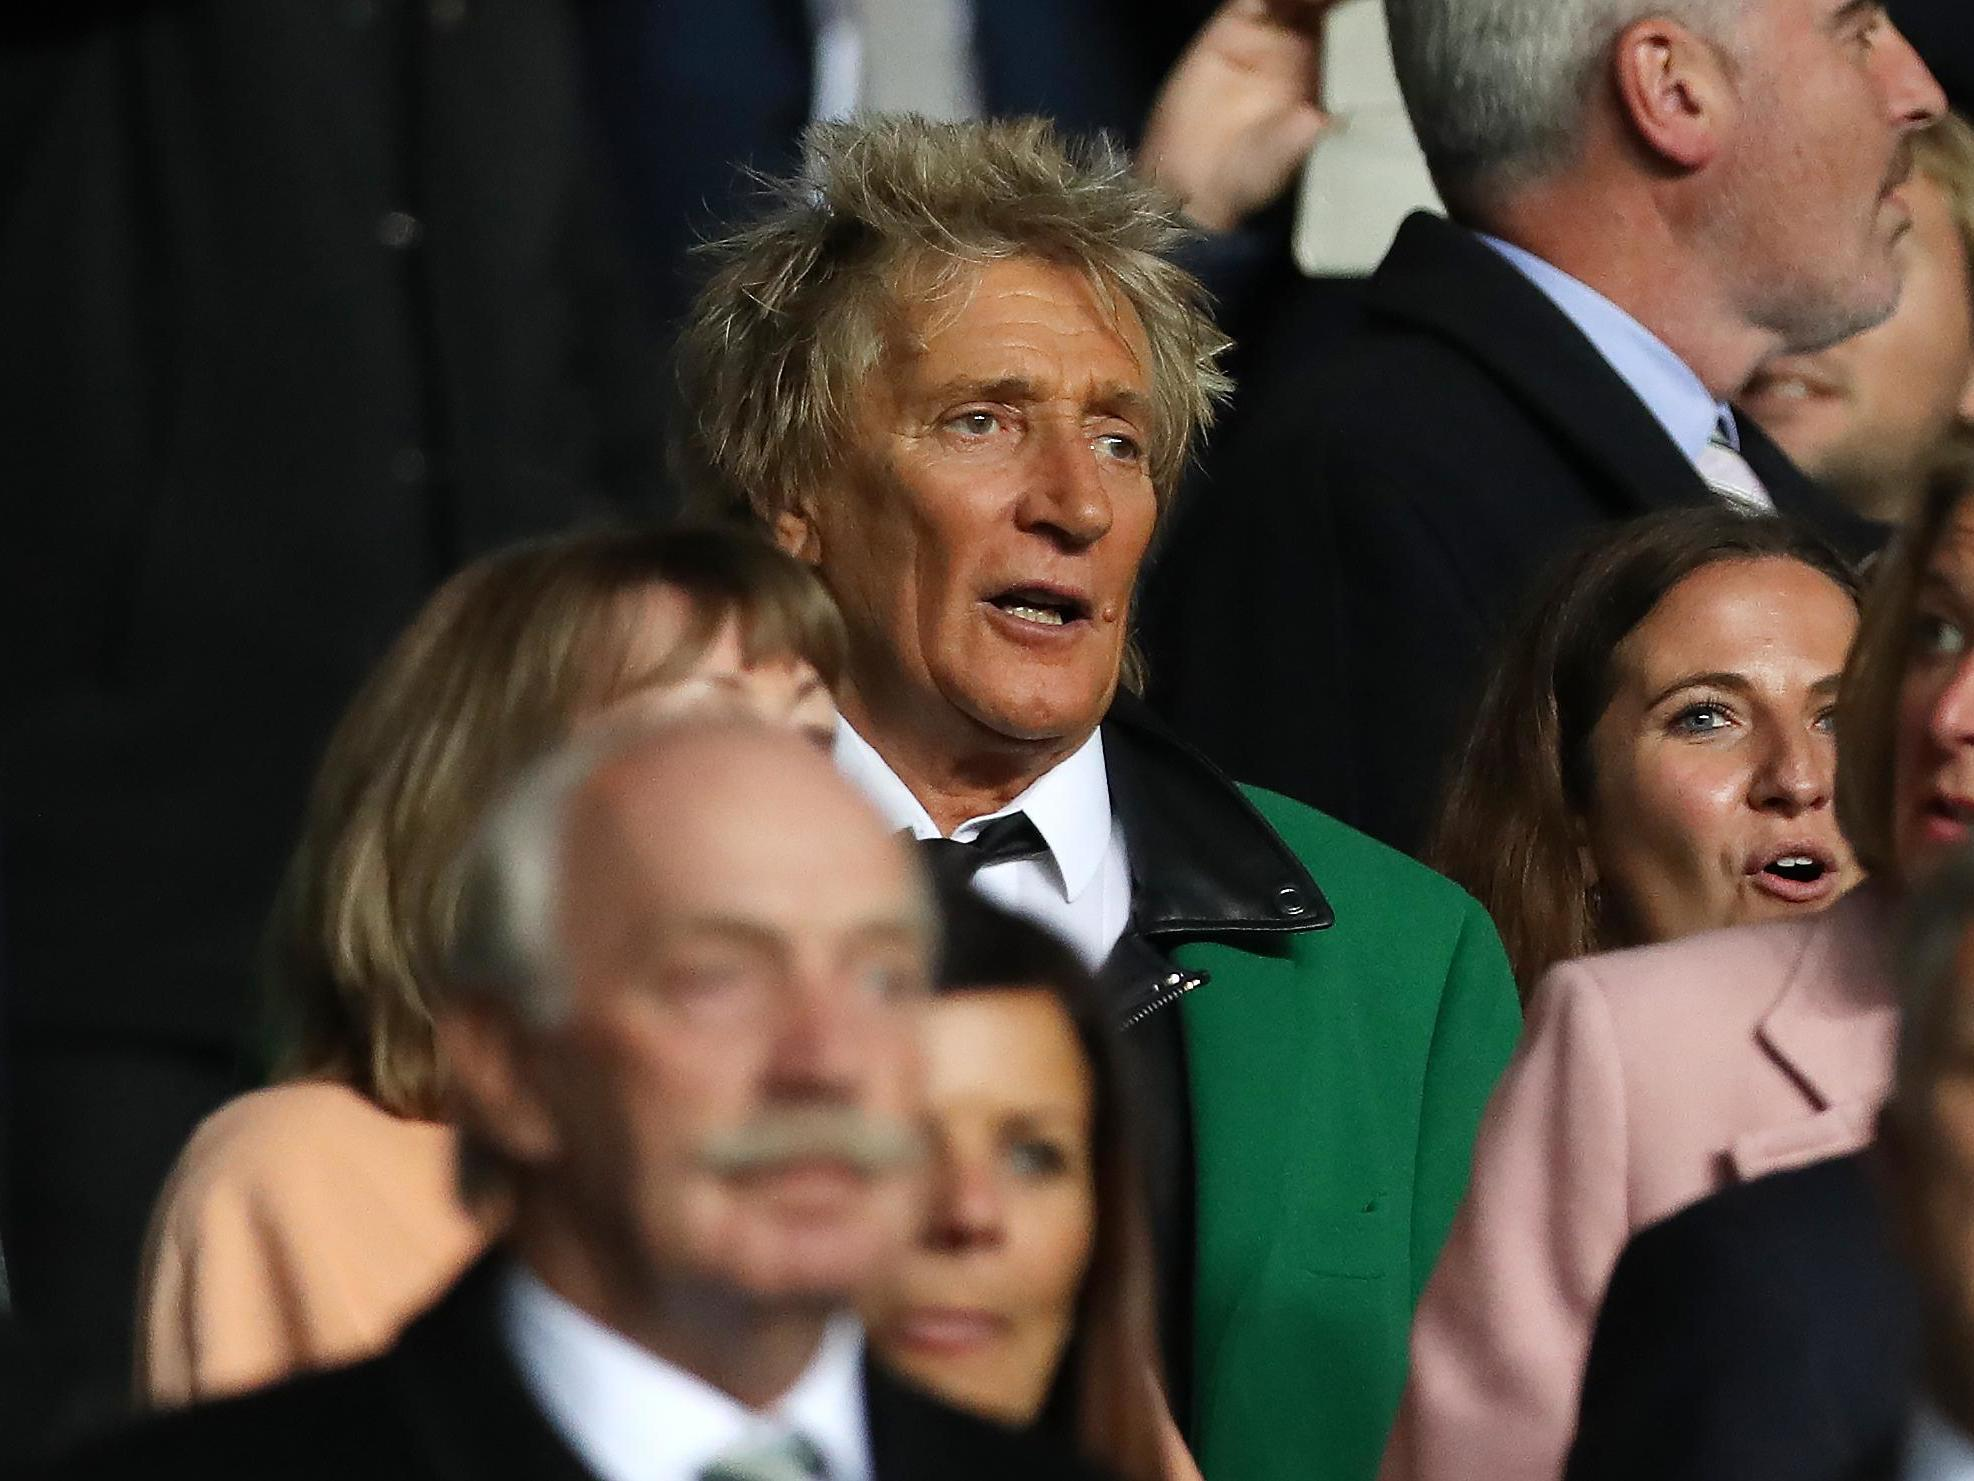 Rod Stewart sent message by Celtic fans after he congratulated Boris Johnson on election win